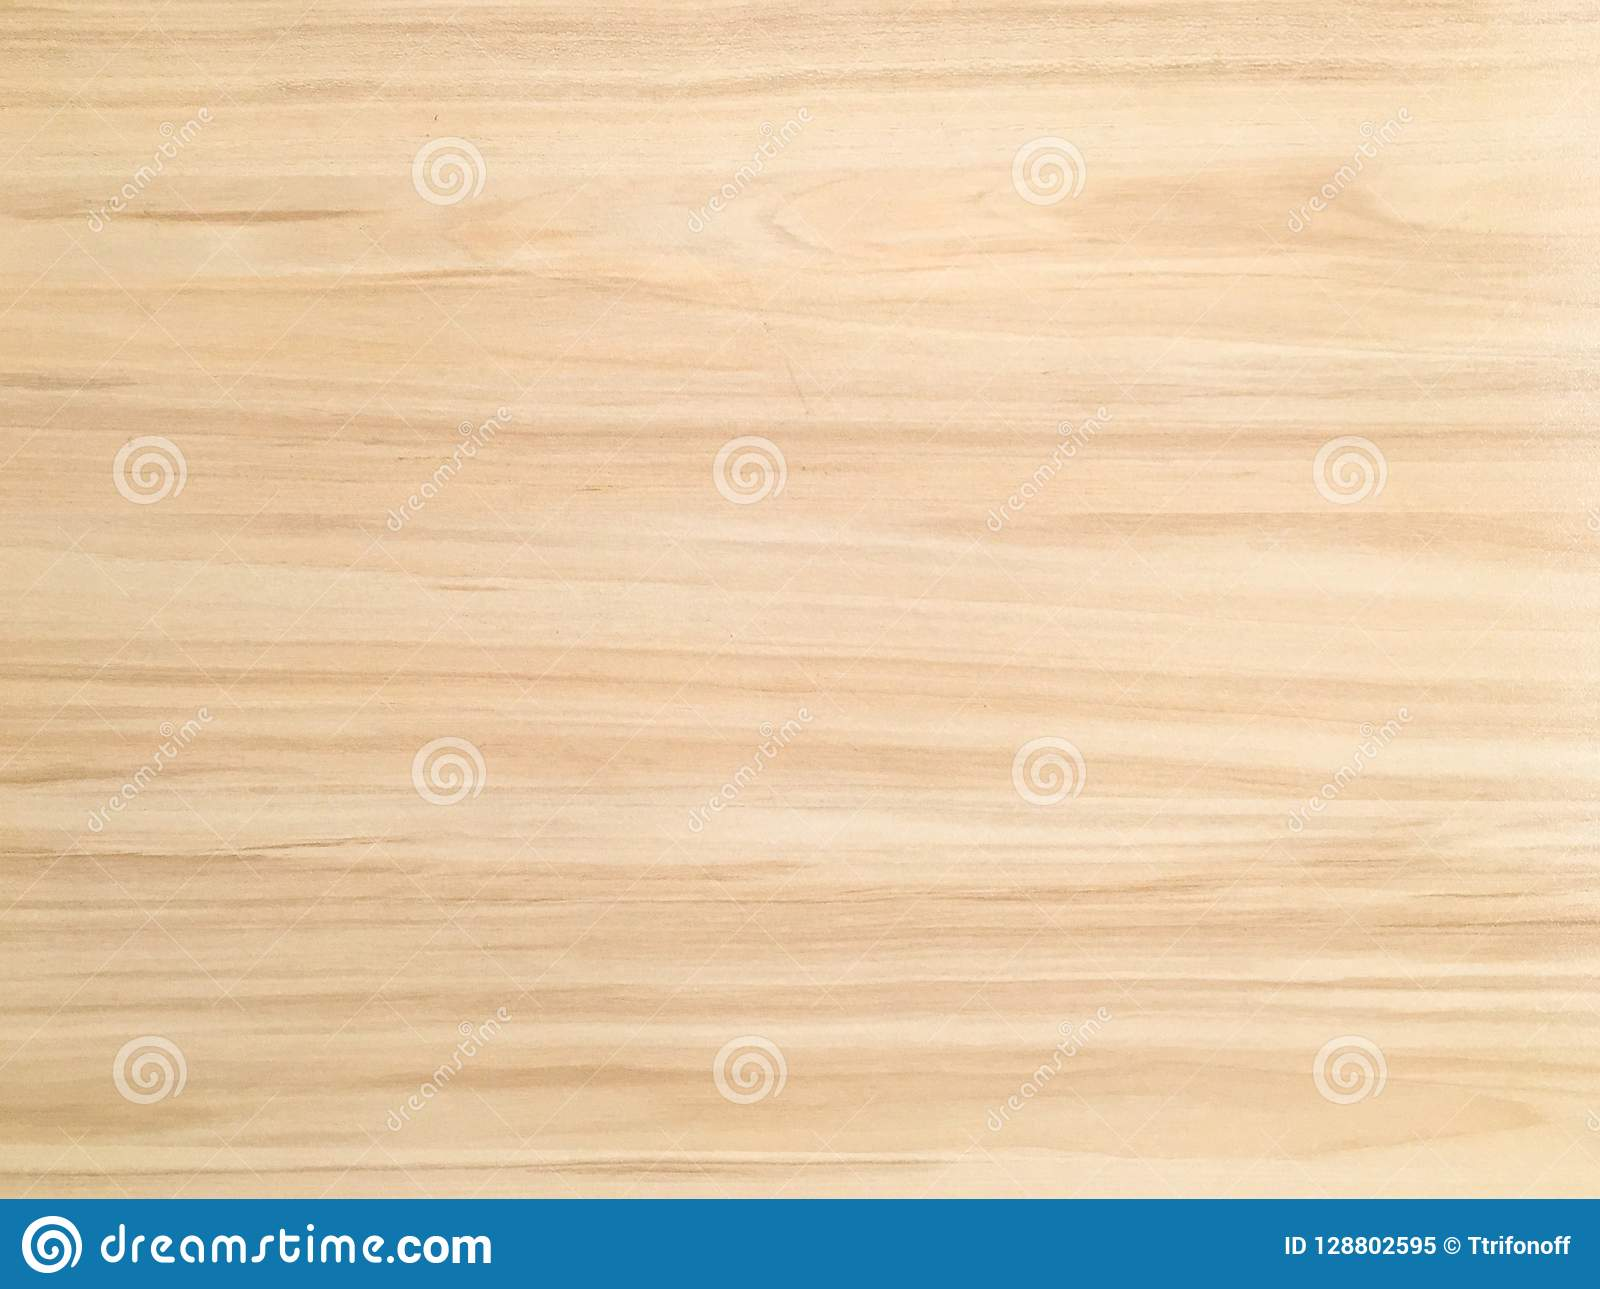 Wood Texture Background, Light Weathered Rustic Oak. Faded ...